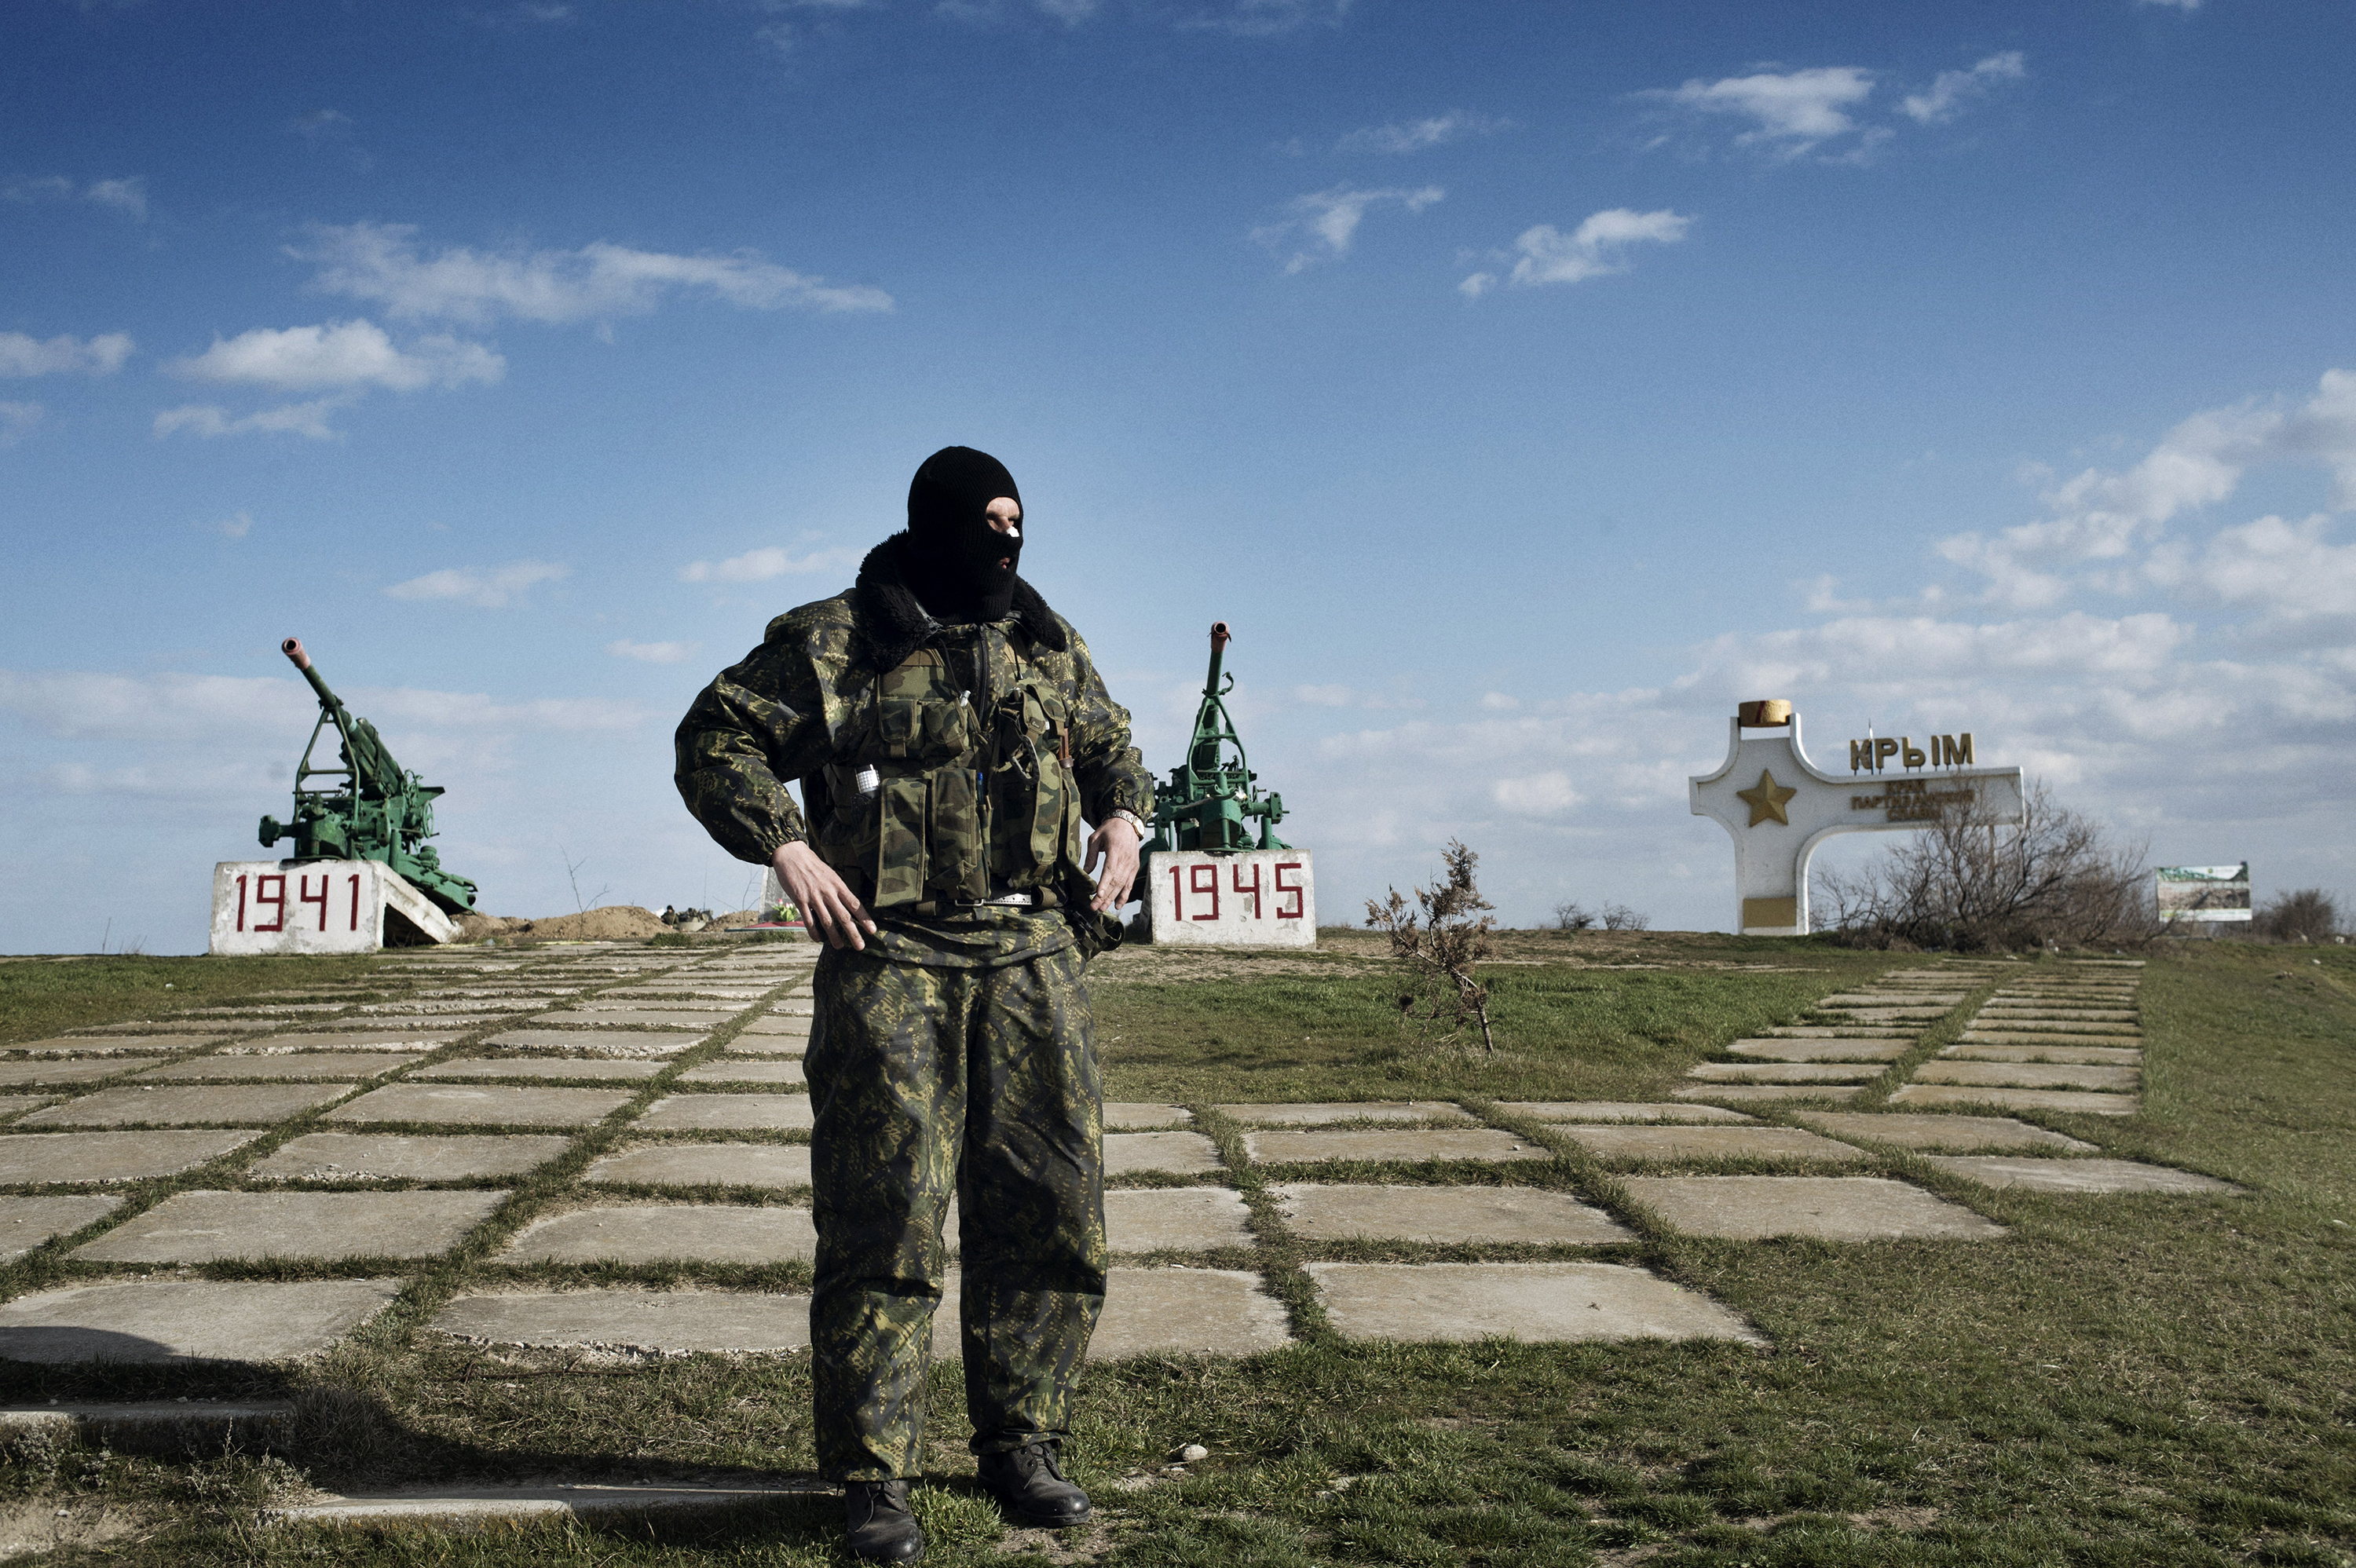 A pro-Russian militiaman stands at a war memorial near what is now the border between Crimea and Ukraine.